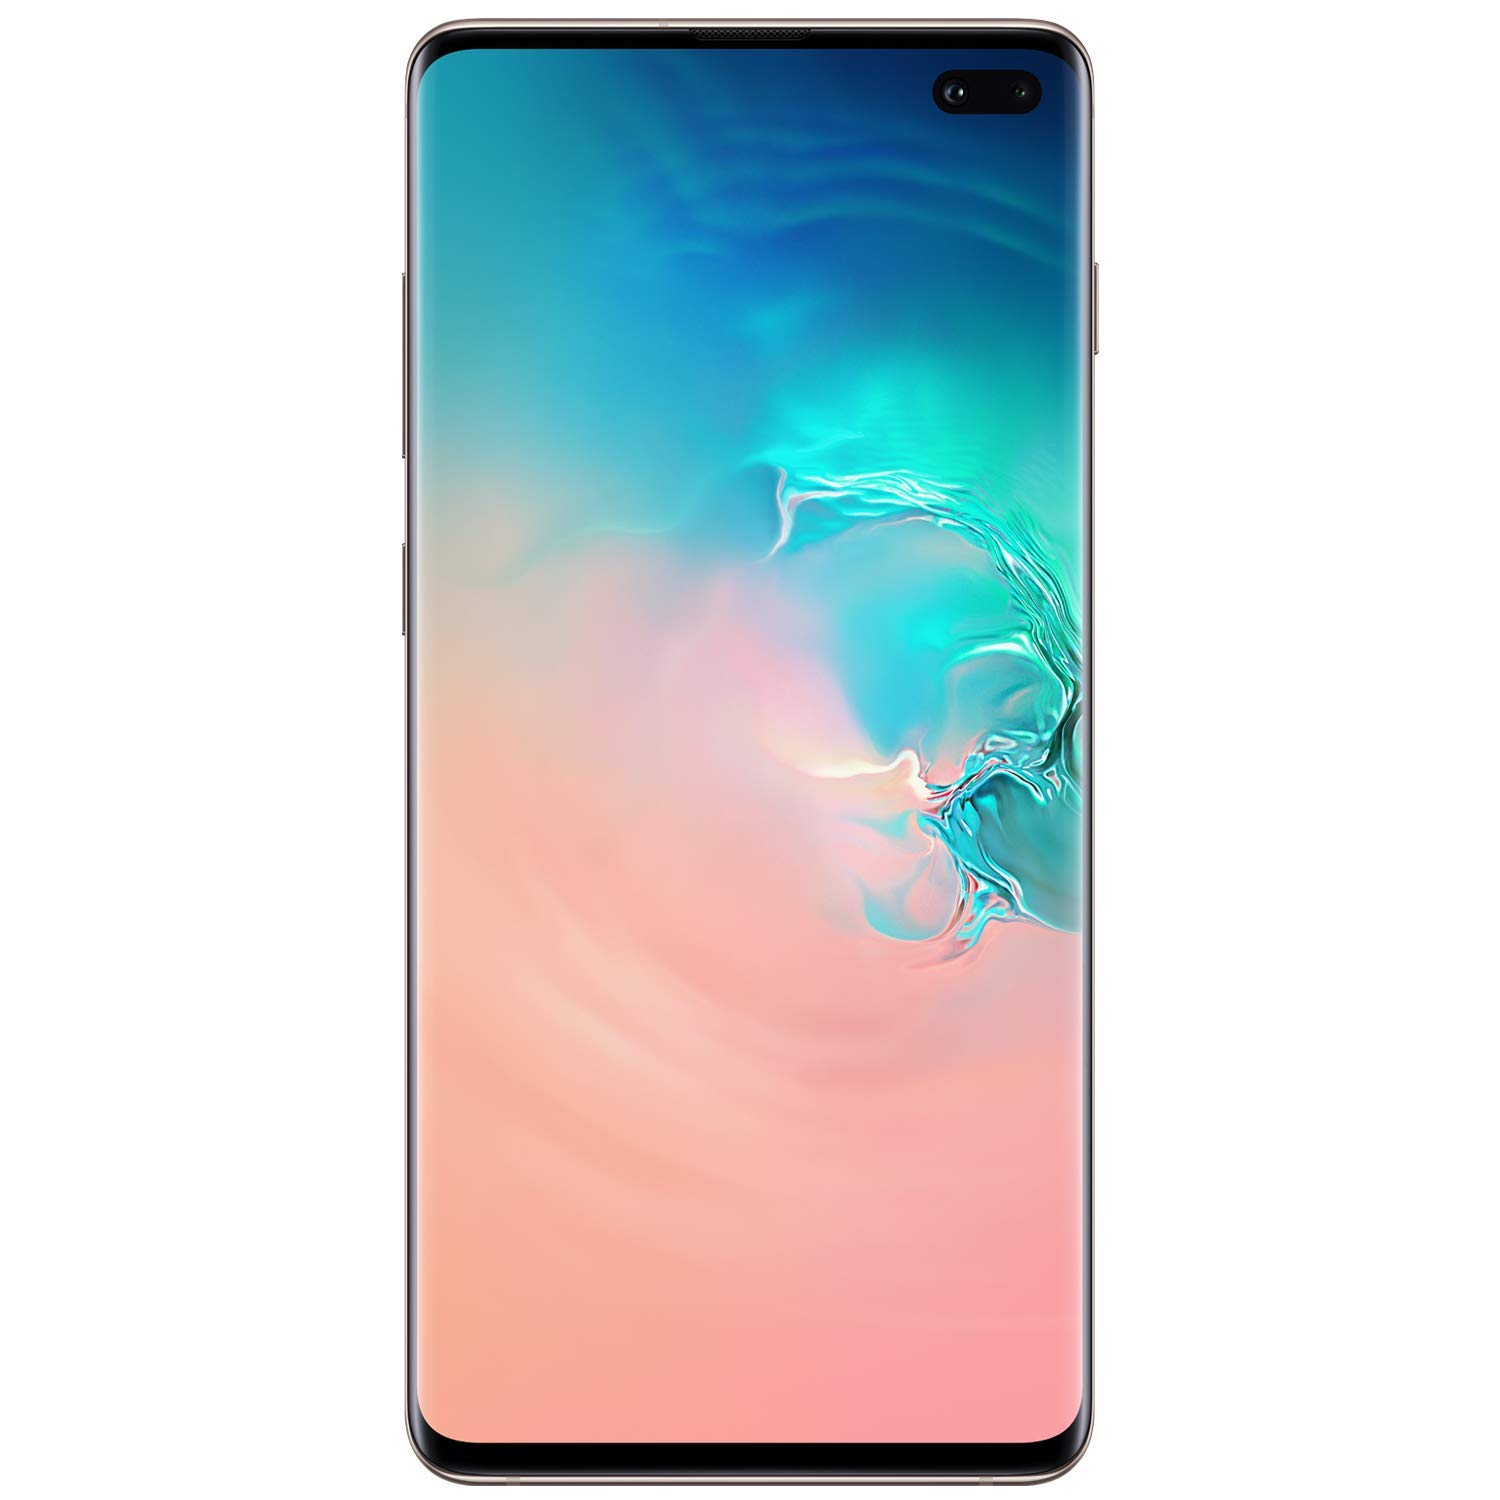 Samsung Galaxy S10+, 512GB, Ceramic White - For AT&T / T-Mobile (Renewed)